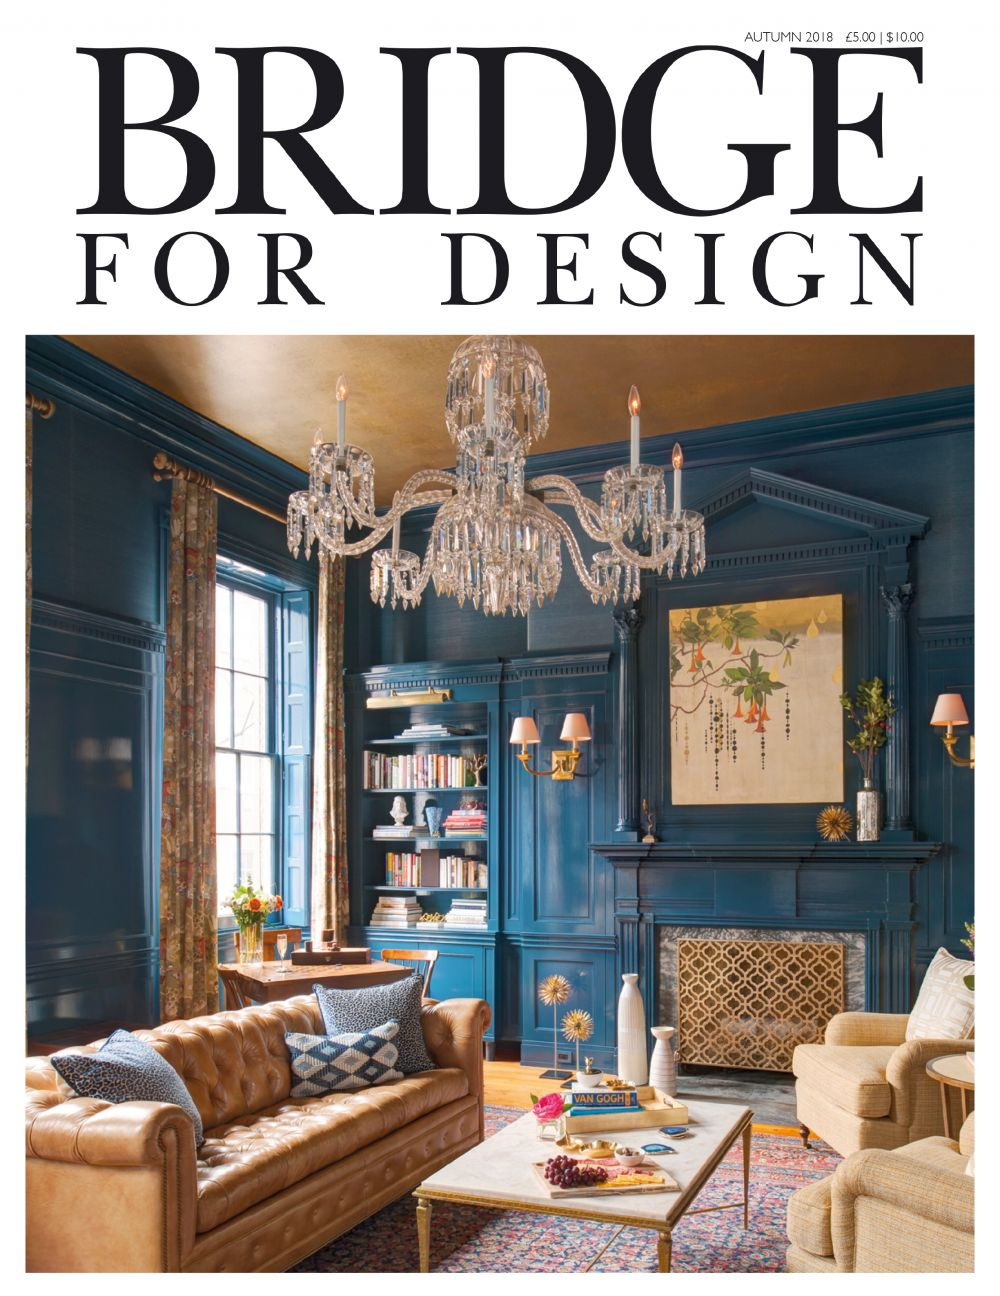 Bridge For Design magazine cover